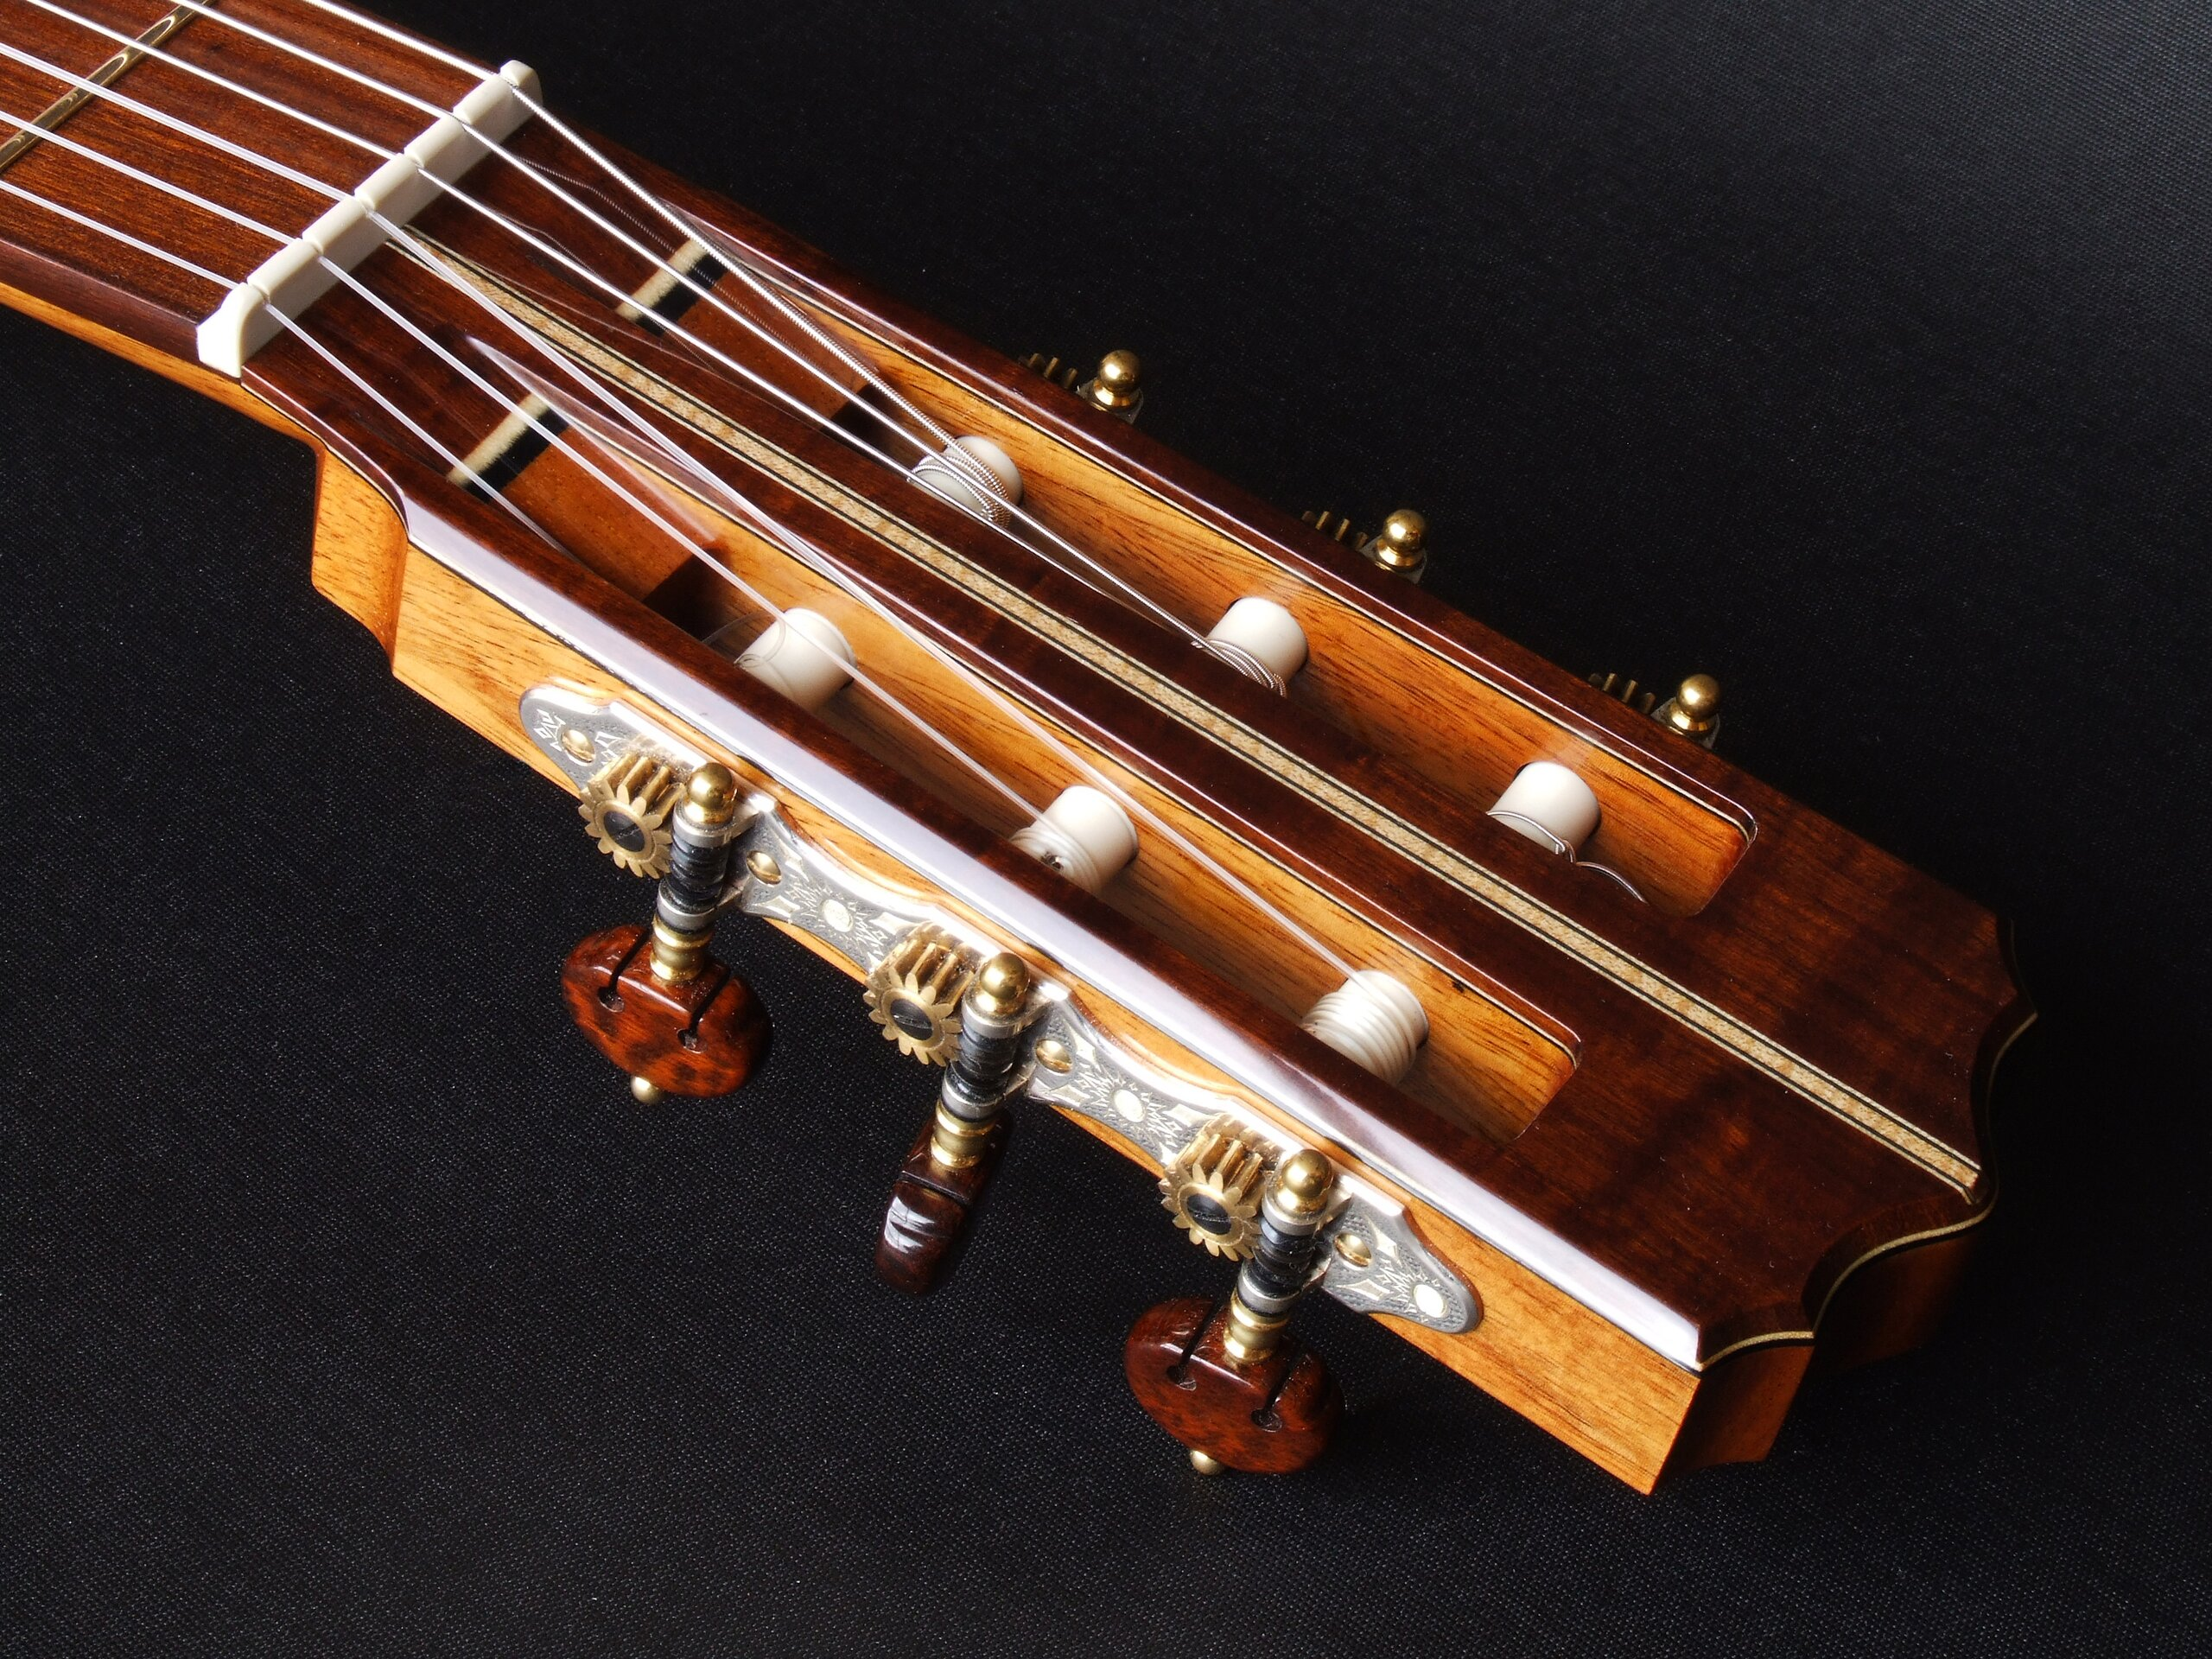 Gidgee faced headstock with Rodgers tuners on a classical guitar